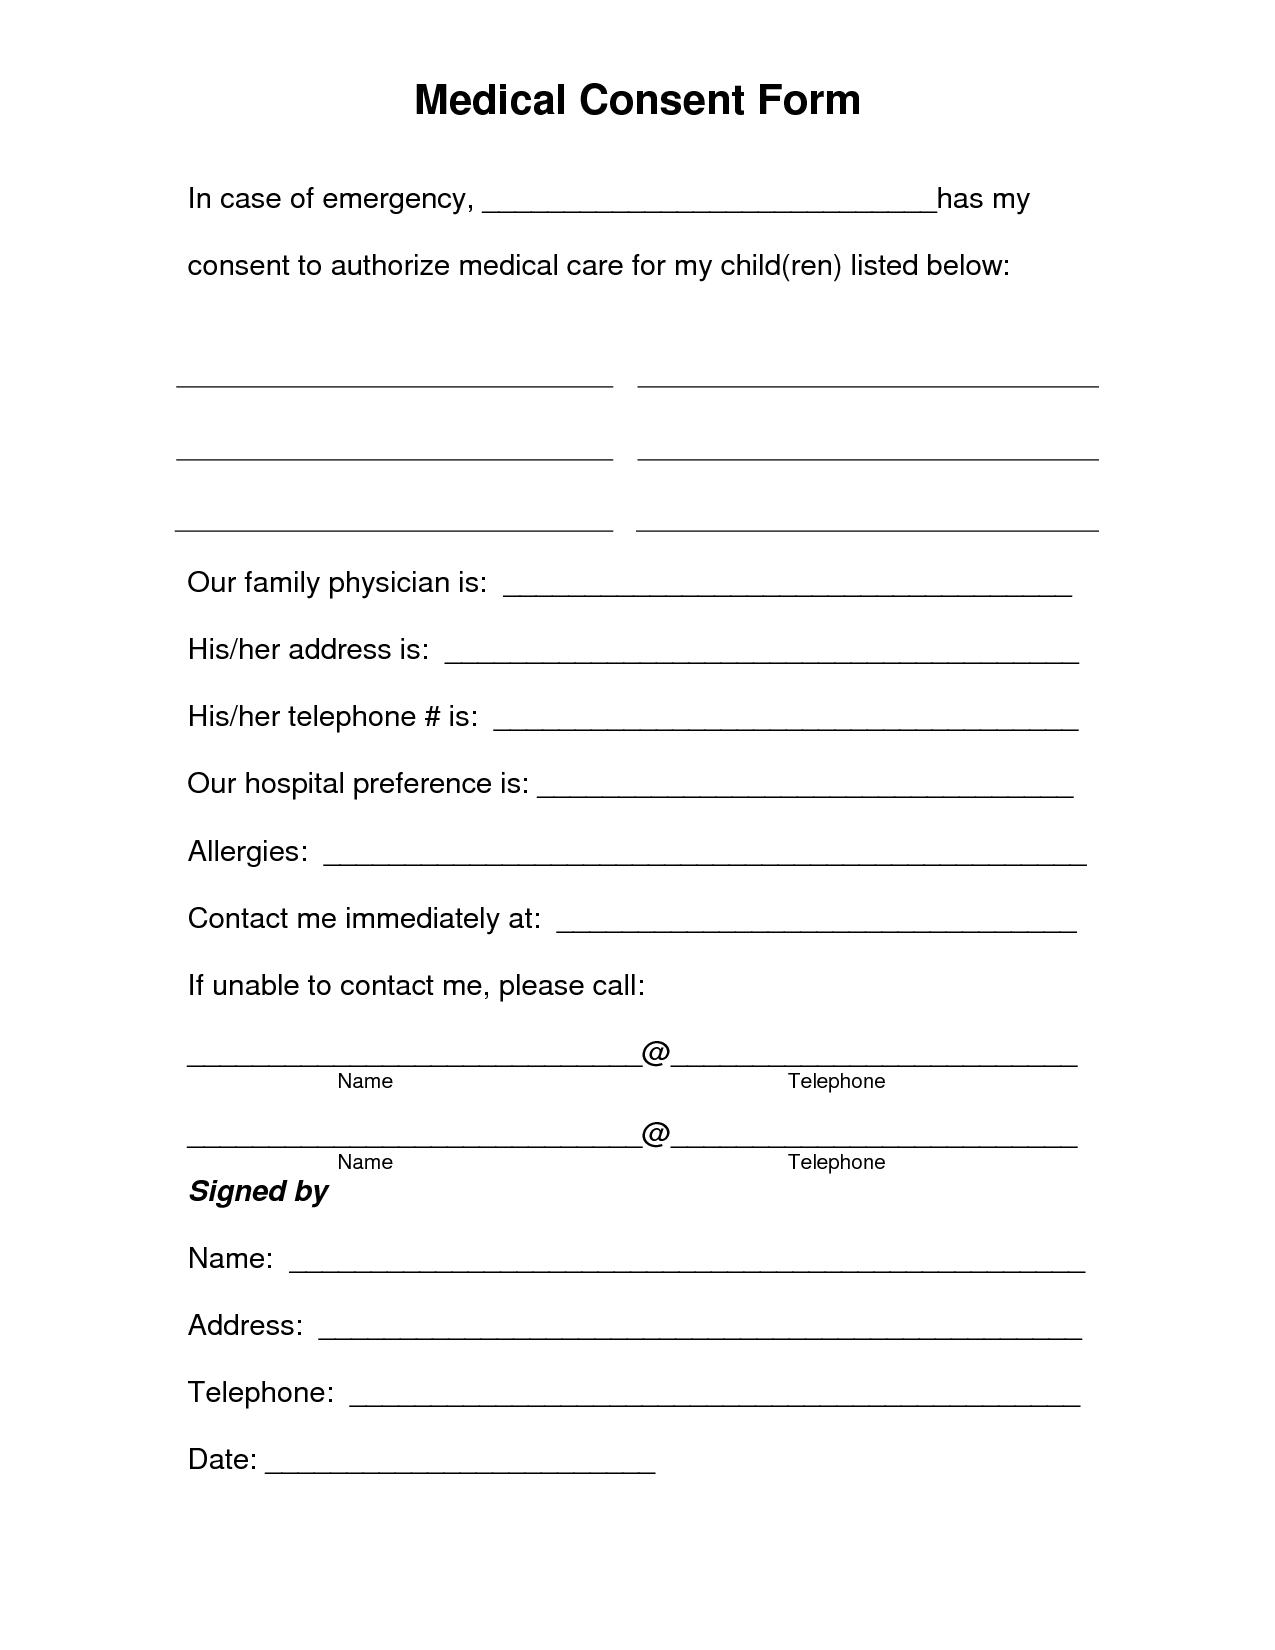 Free Printable Medical Consent Form   Free Medical Consent Form - Free Printable Medical Forms